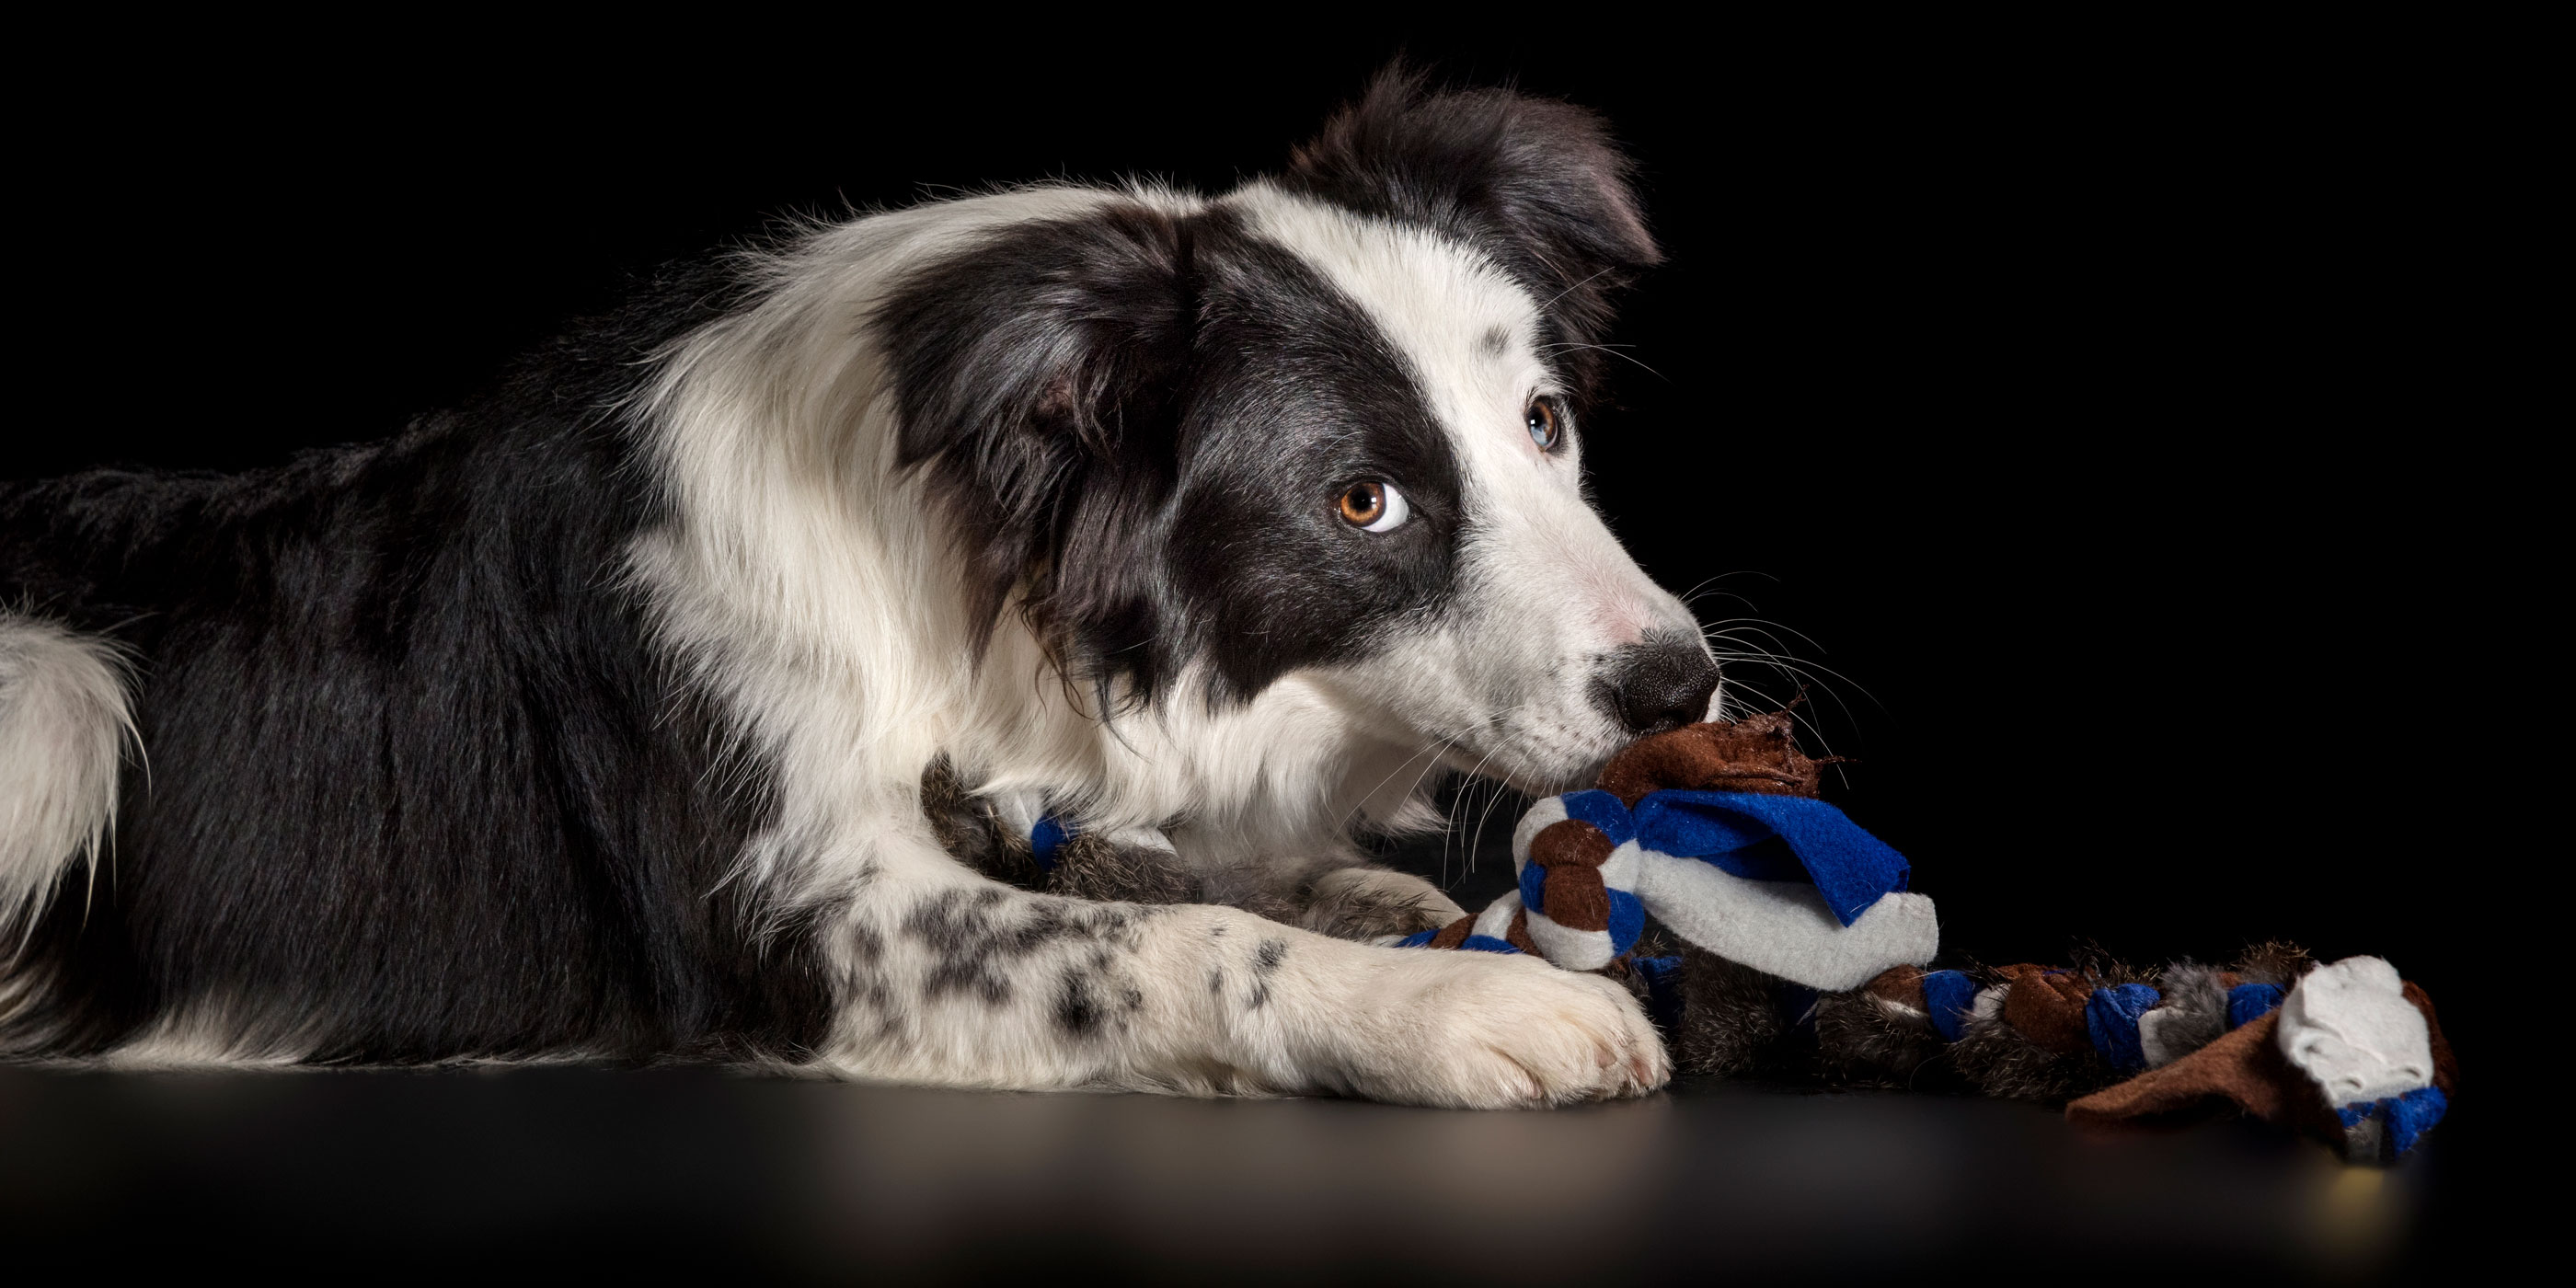 cheeky looking black and white border collie chewing on toy